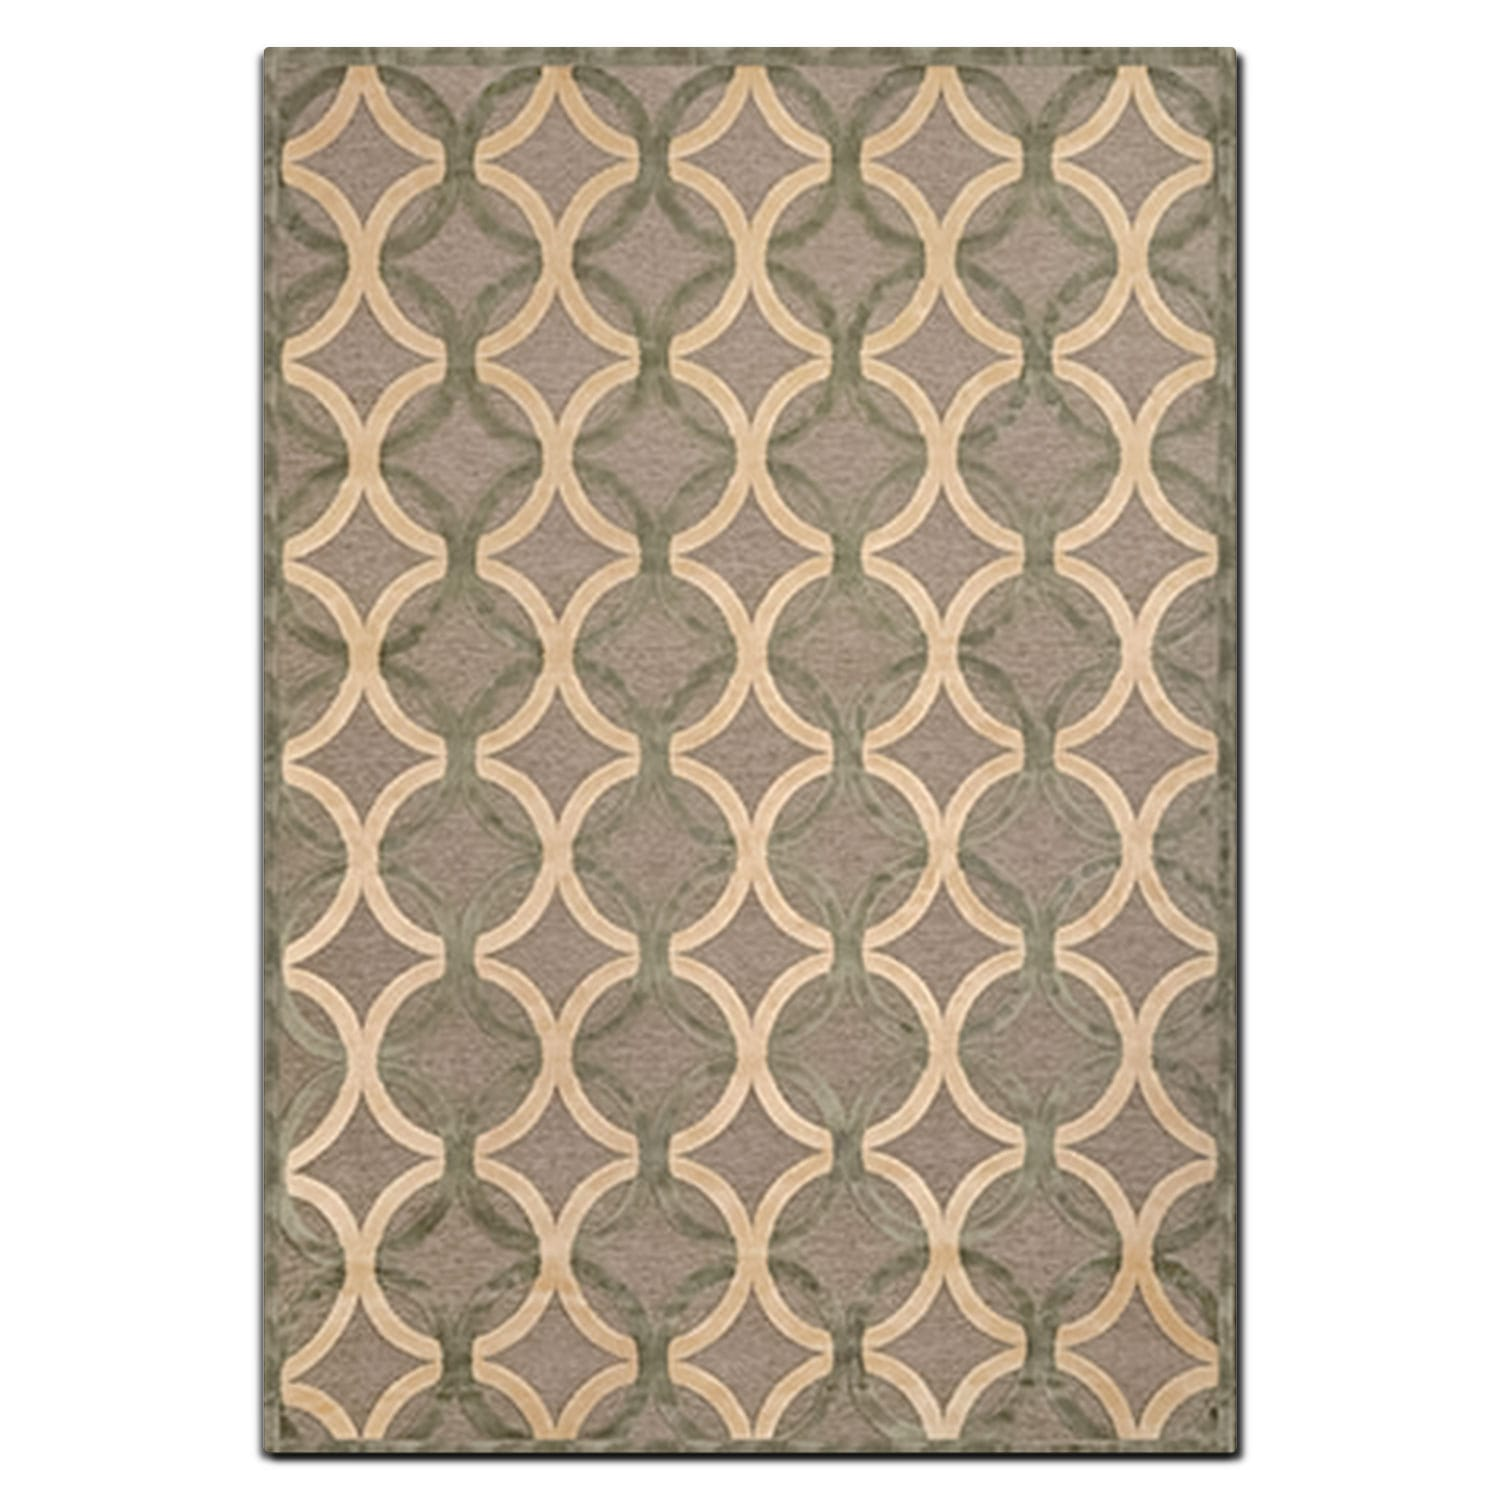 Napa 8' x 10' Area Rug - Ivory and Seafoam